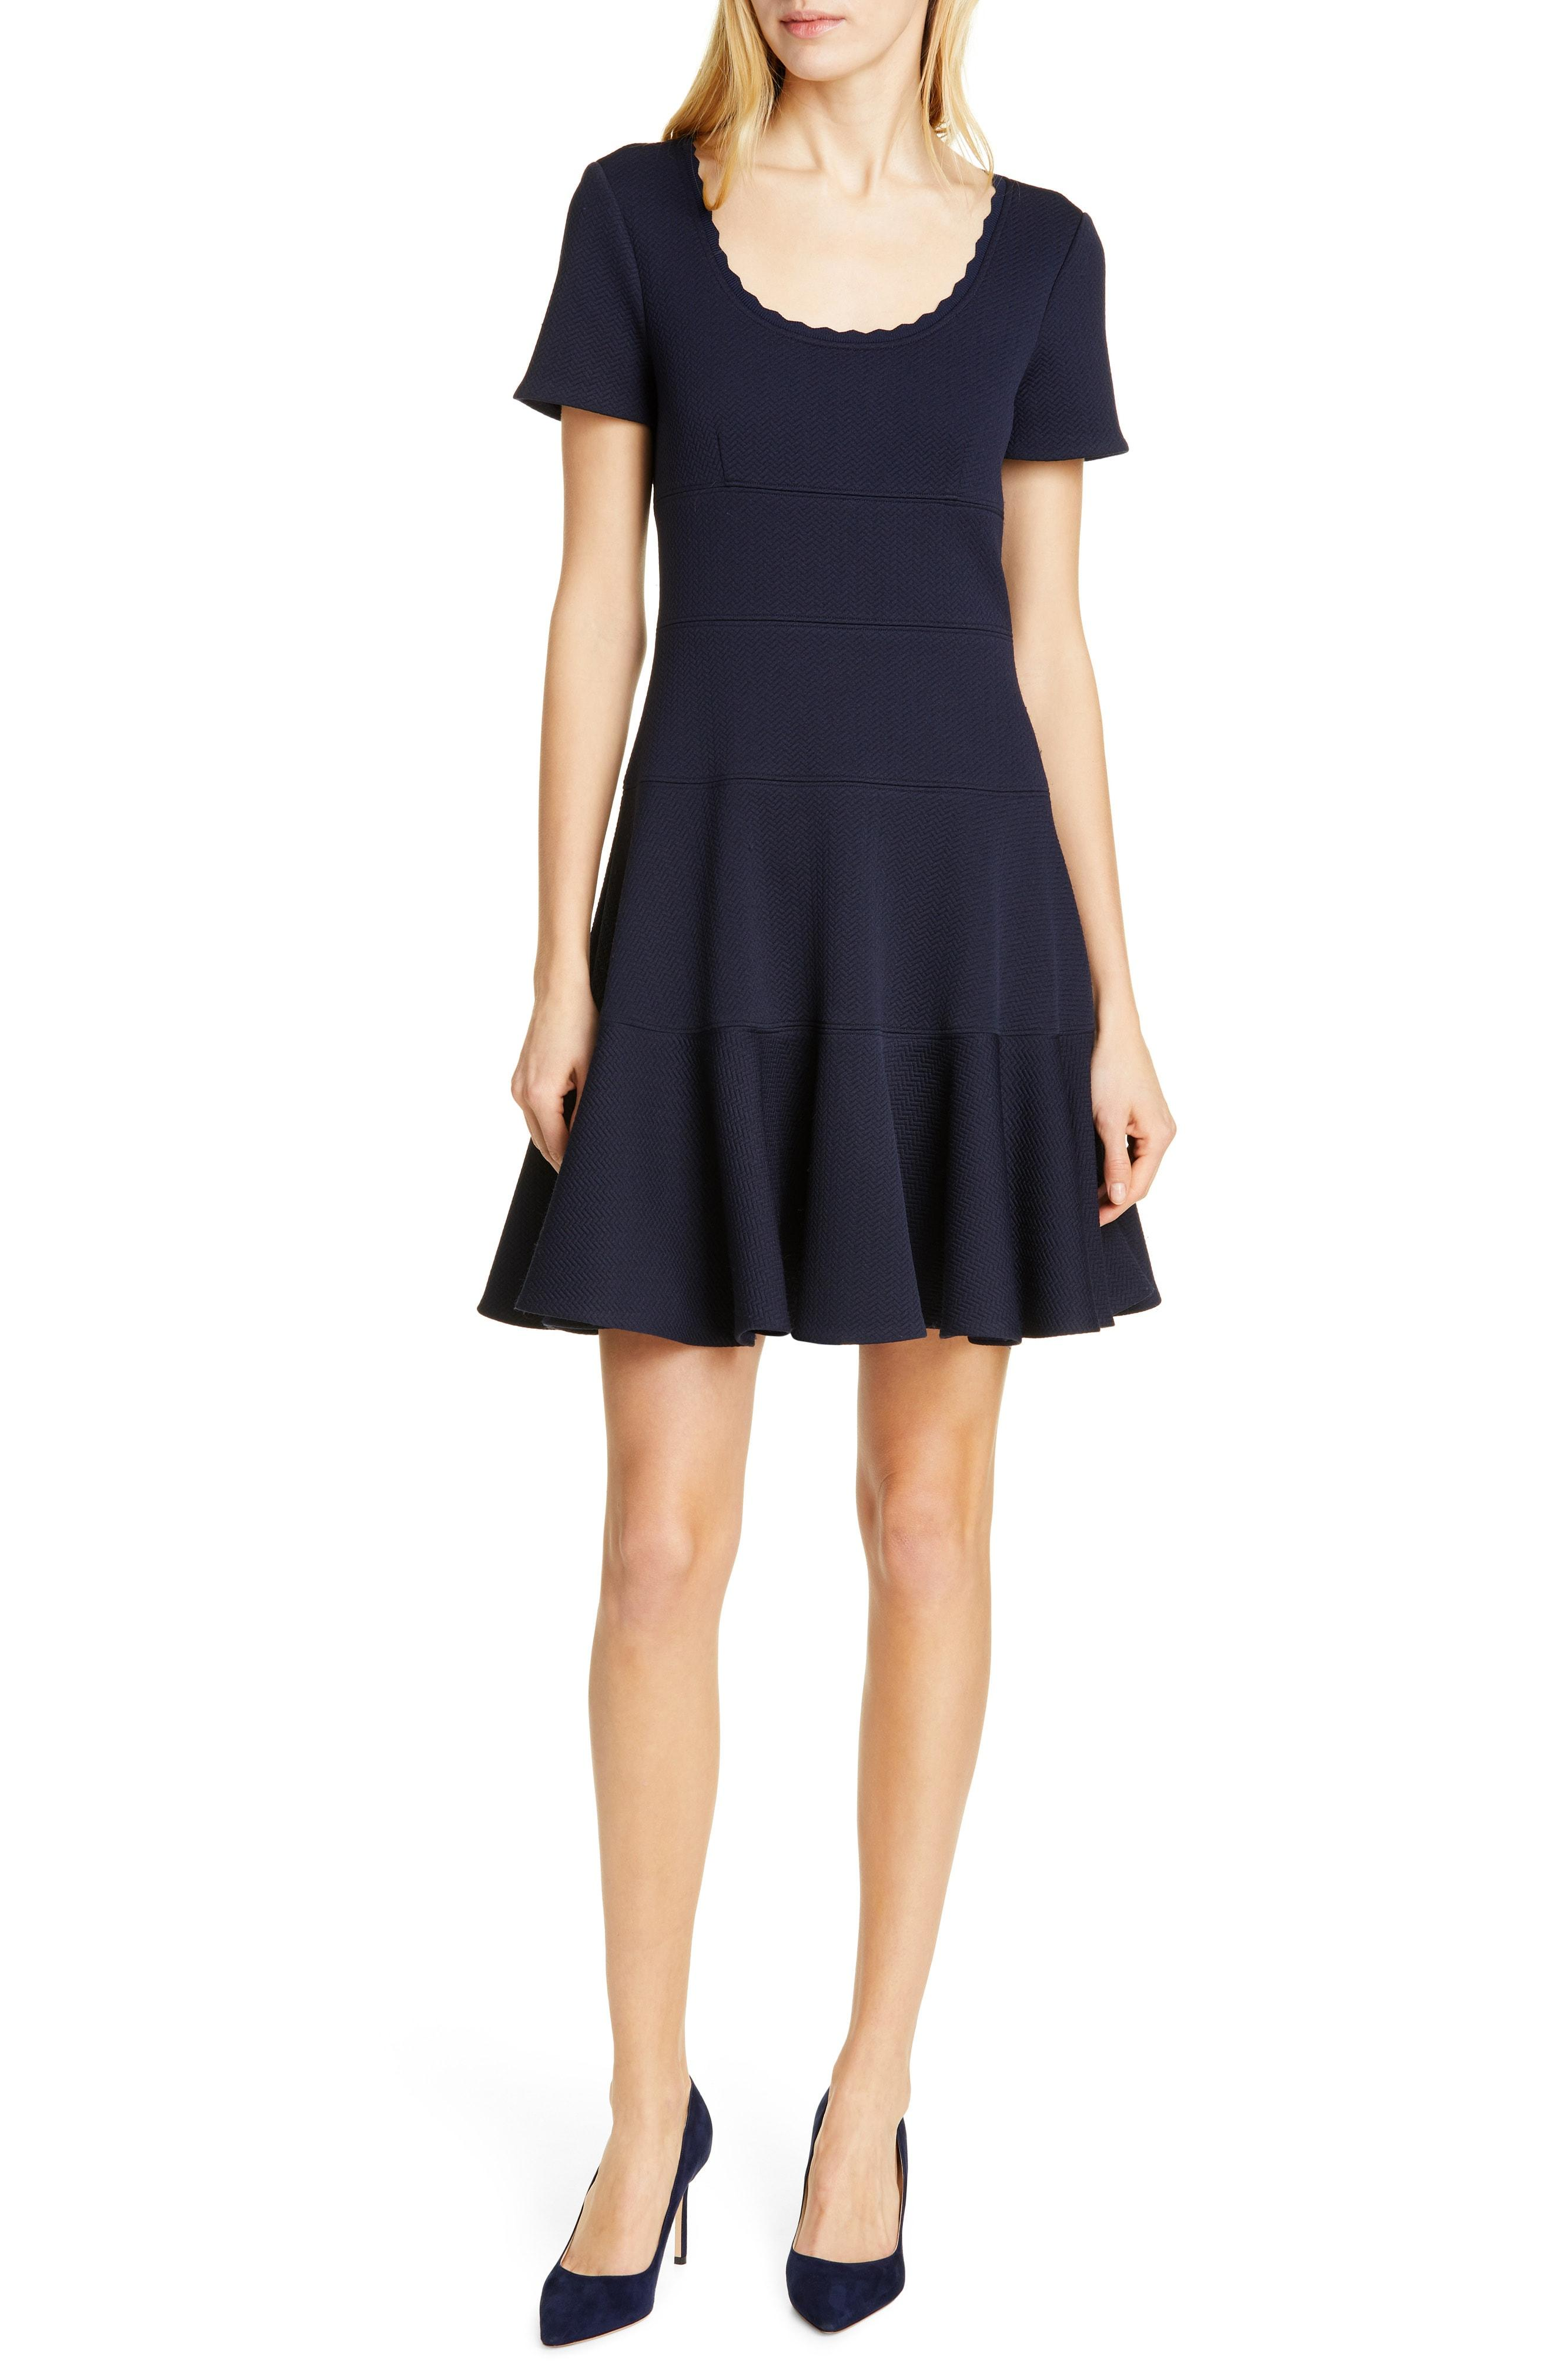 9c4546f9b3 Lyst - Rebecca Taylor Textured Scallop Detail Fit   Flare Dress in Blue